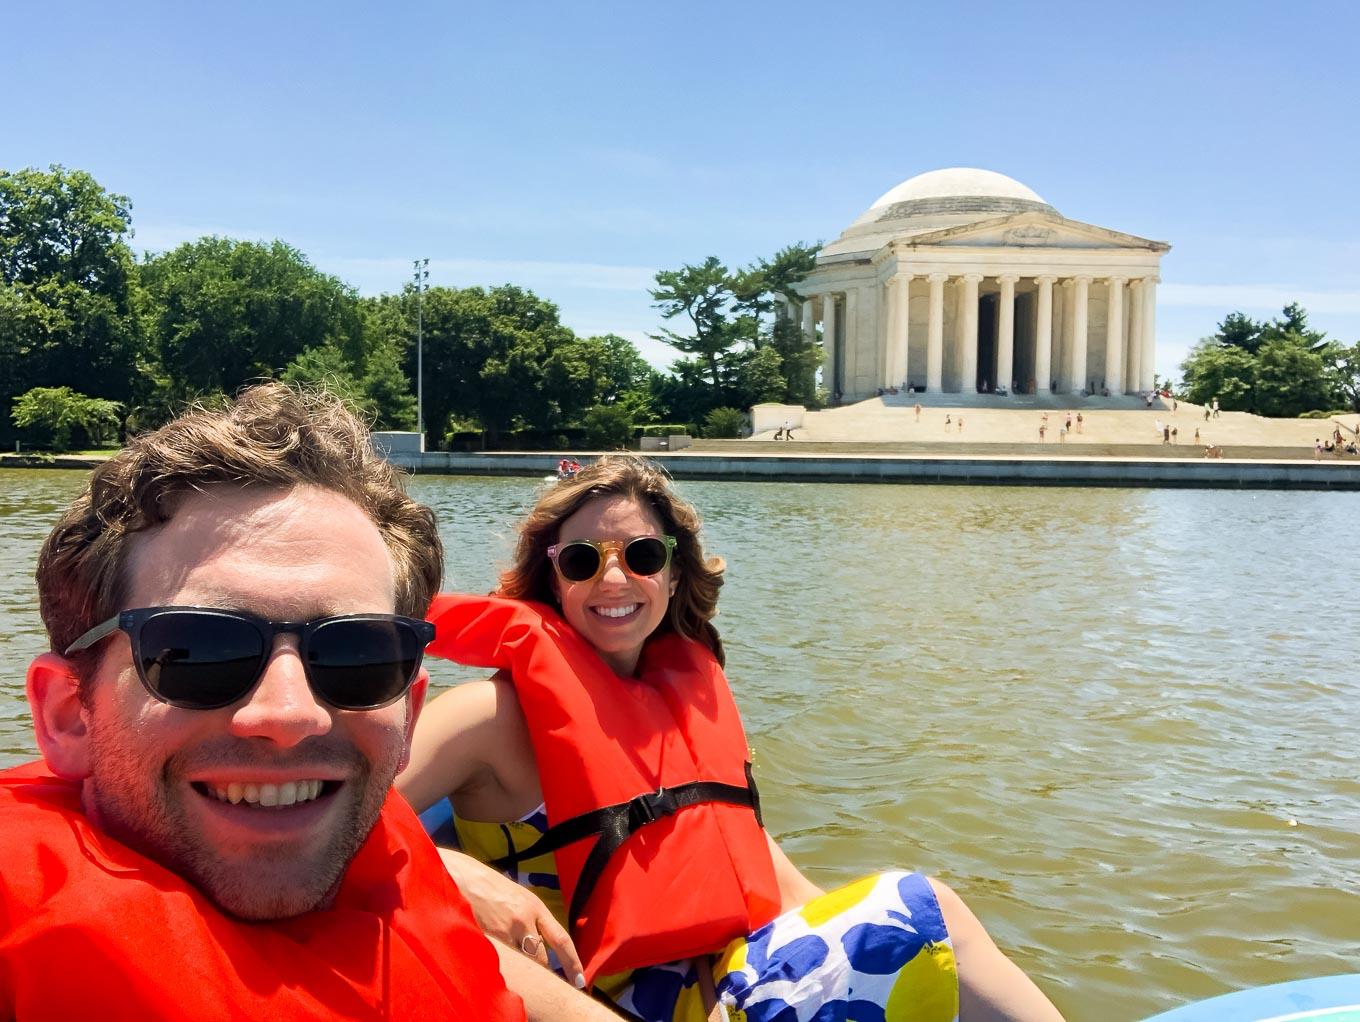 A Weekend In Washington, DC by popular Chicago travel blogger, Glass of Glam